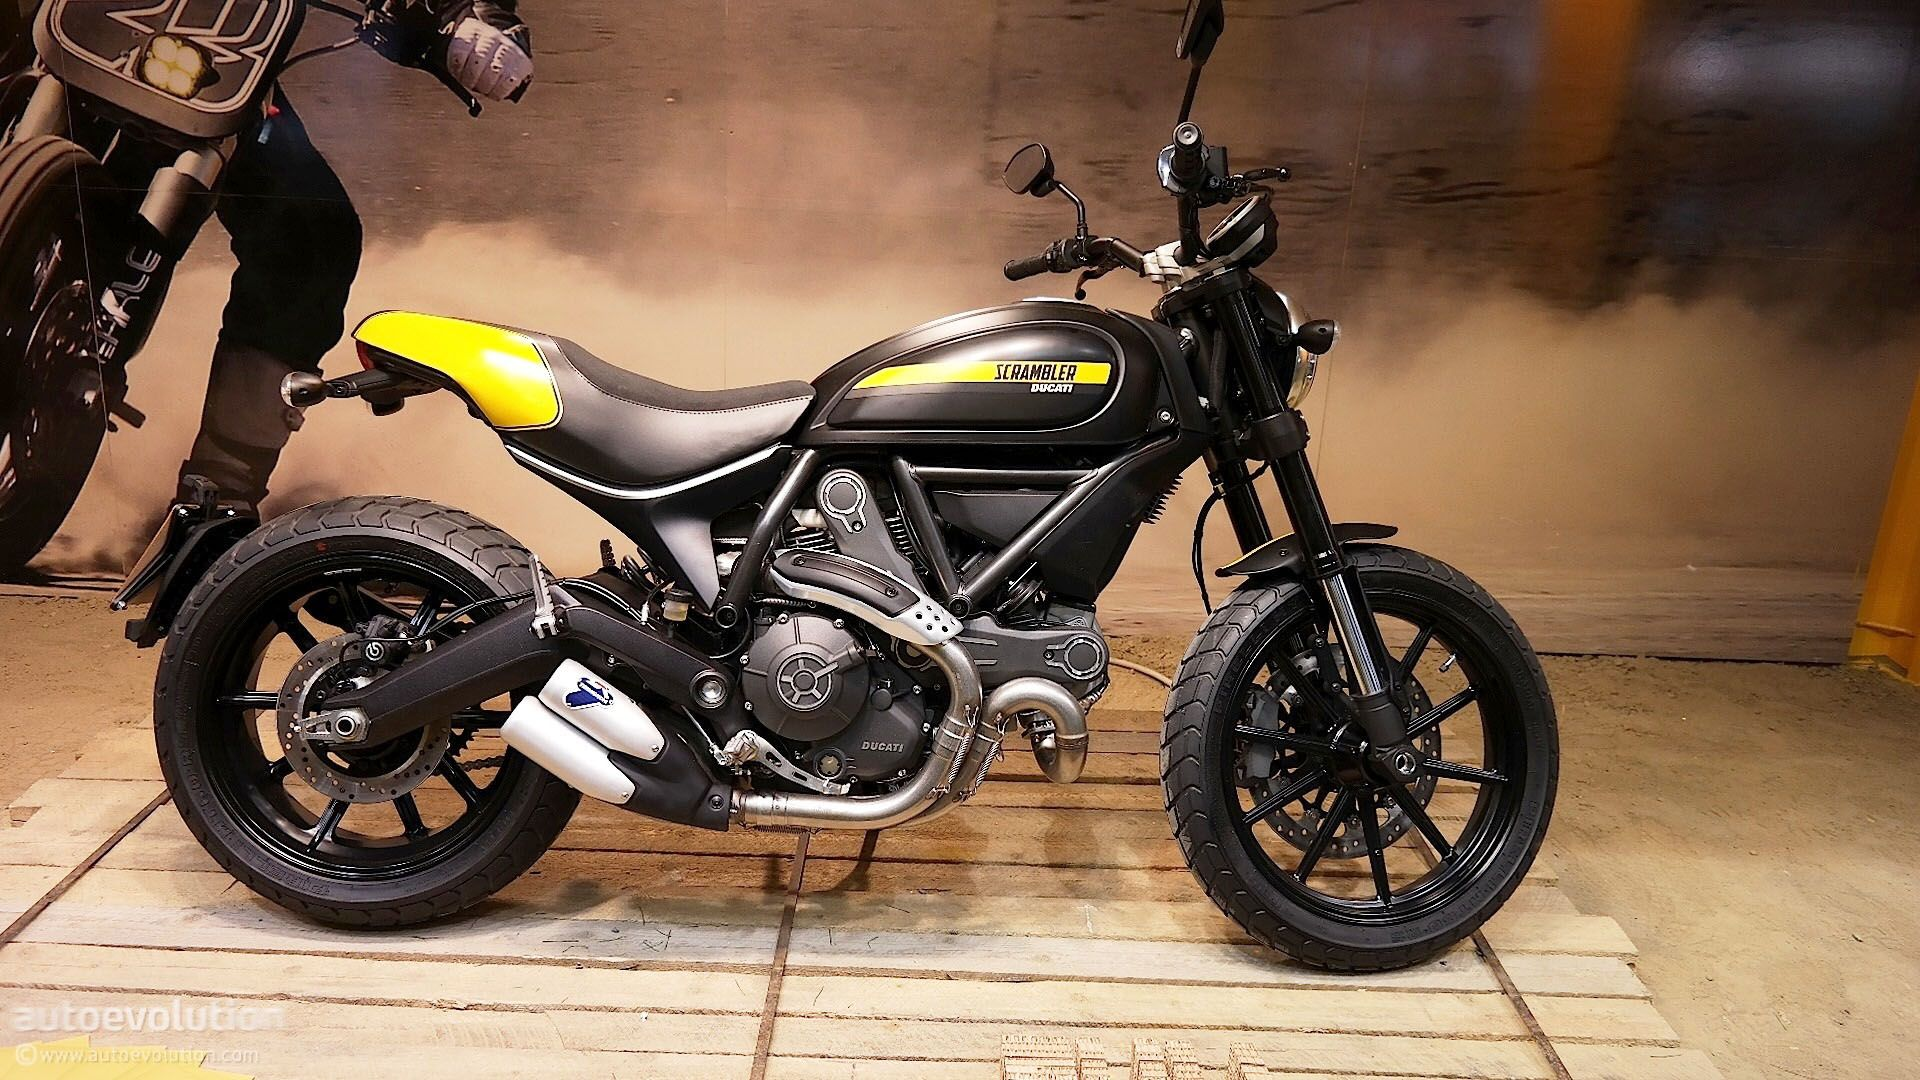 2015 ducati scrambler full throttle wide wallpaper | motorcycles hd